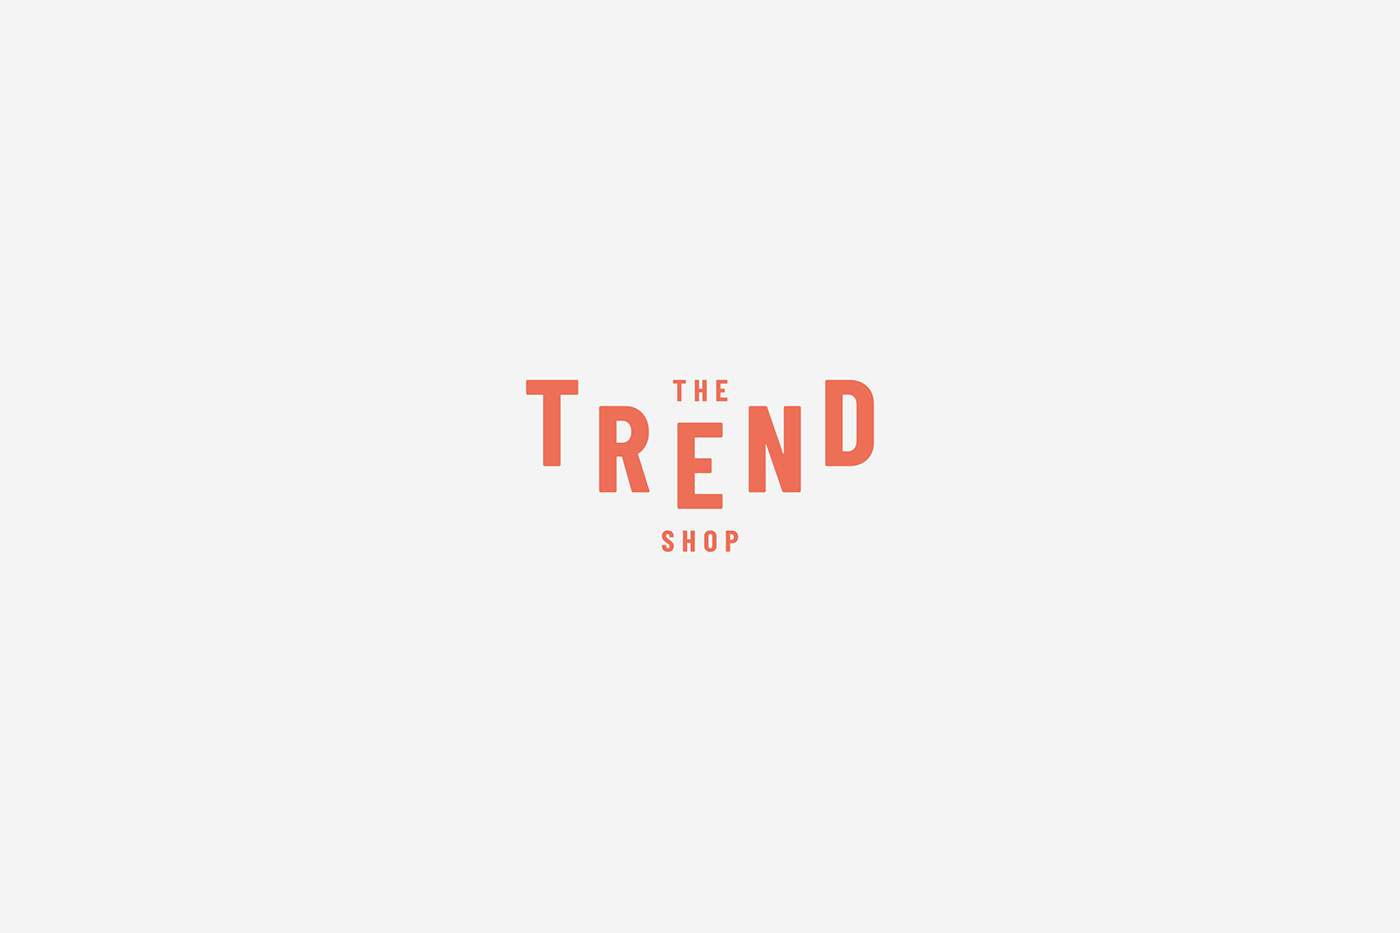 brand Clothing color trend design